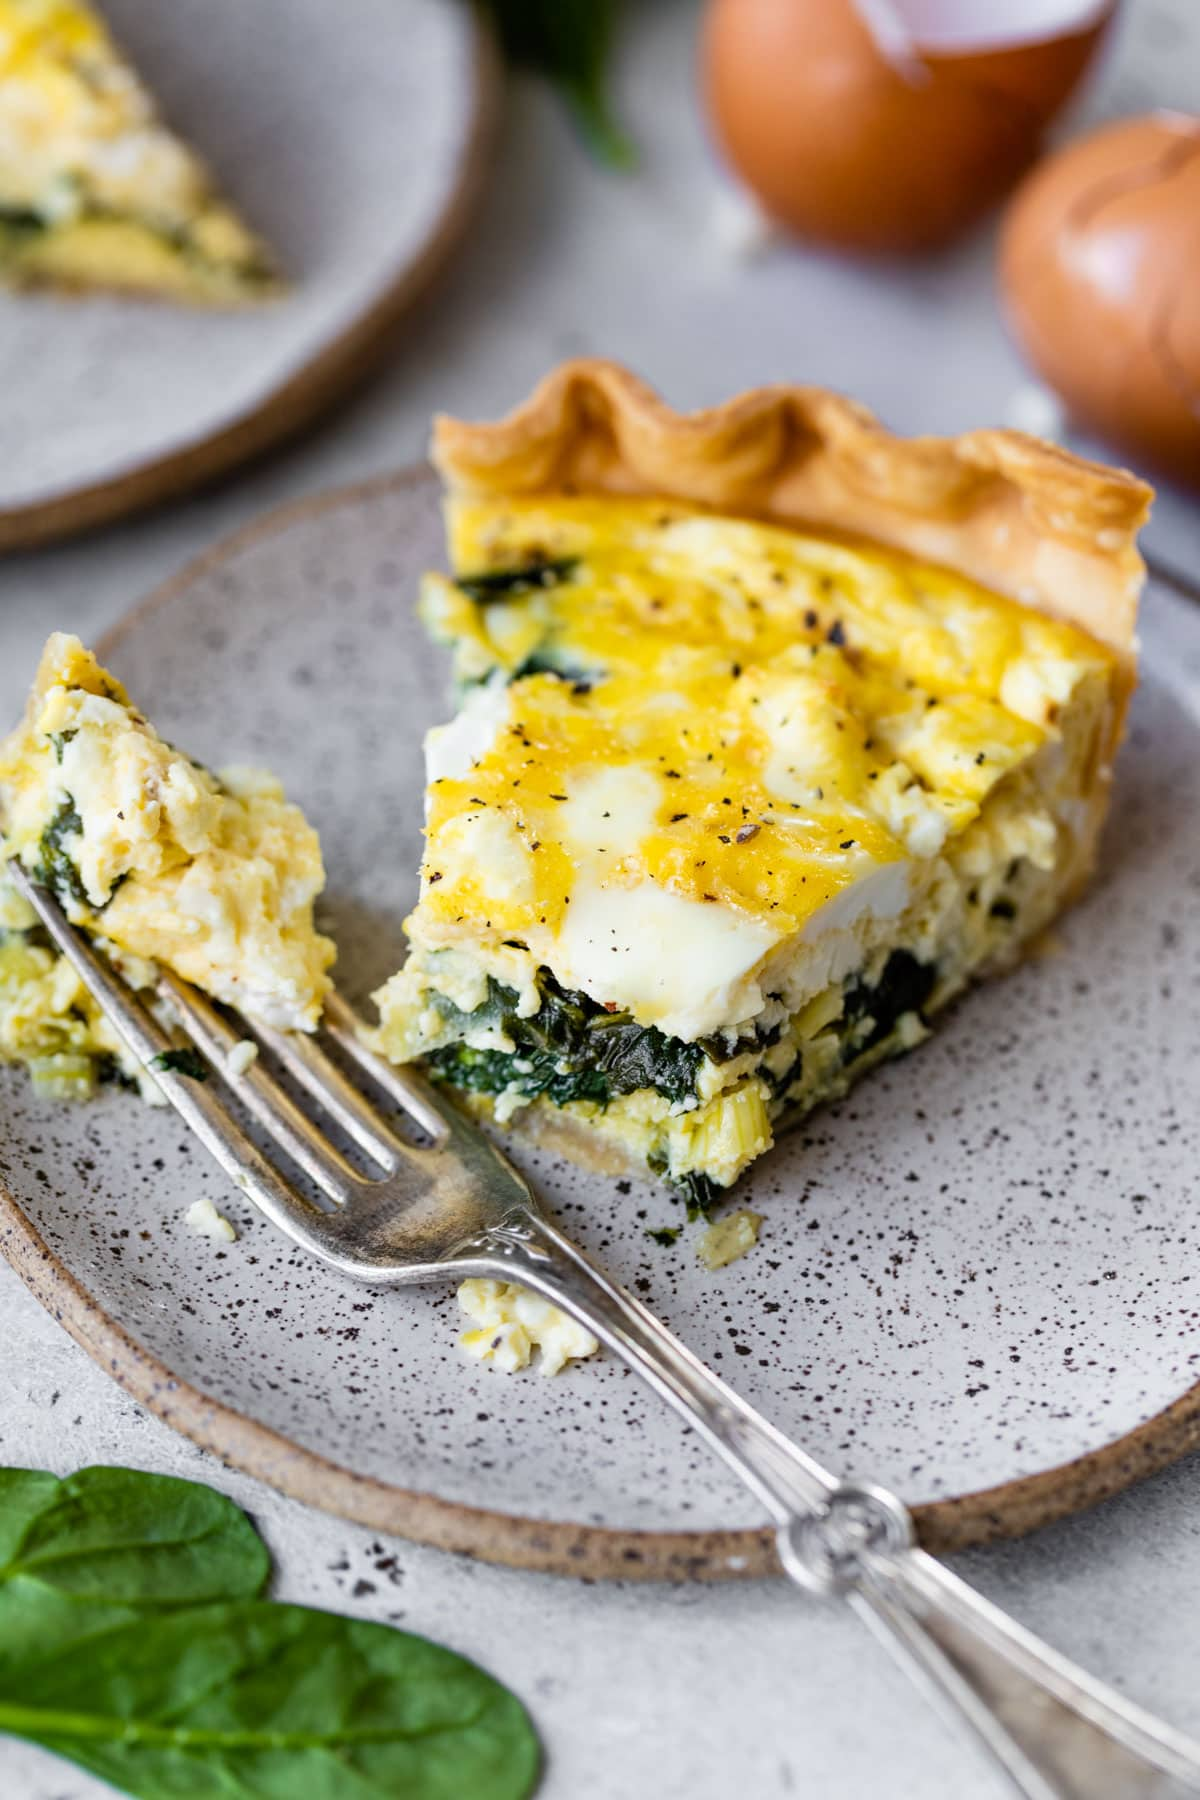 A simple and beautiful Spinach Feta Quiche. The phyllo dough crust is easy and impressive! @wellplated